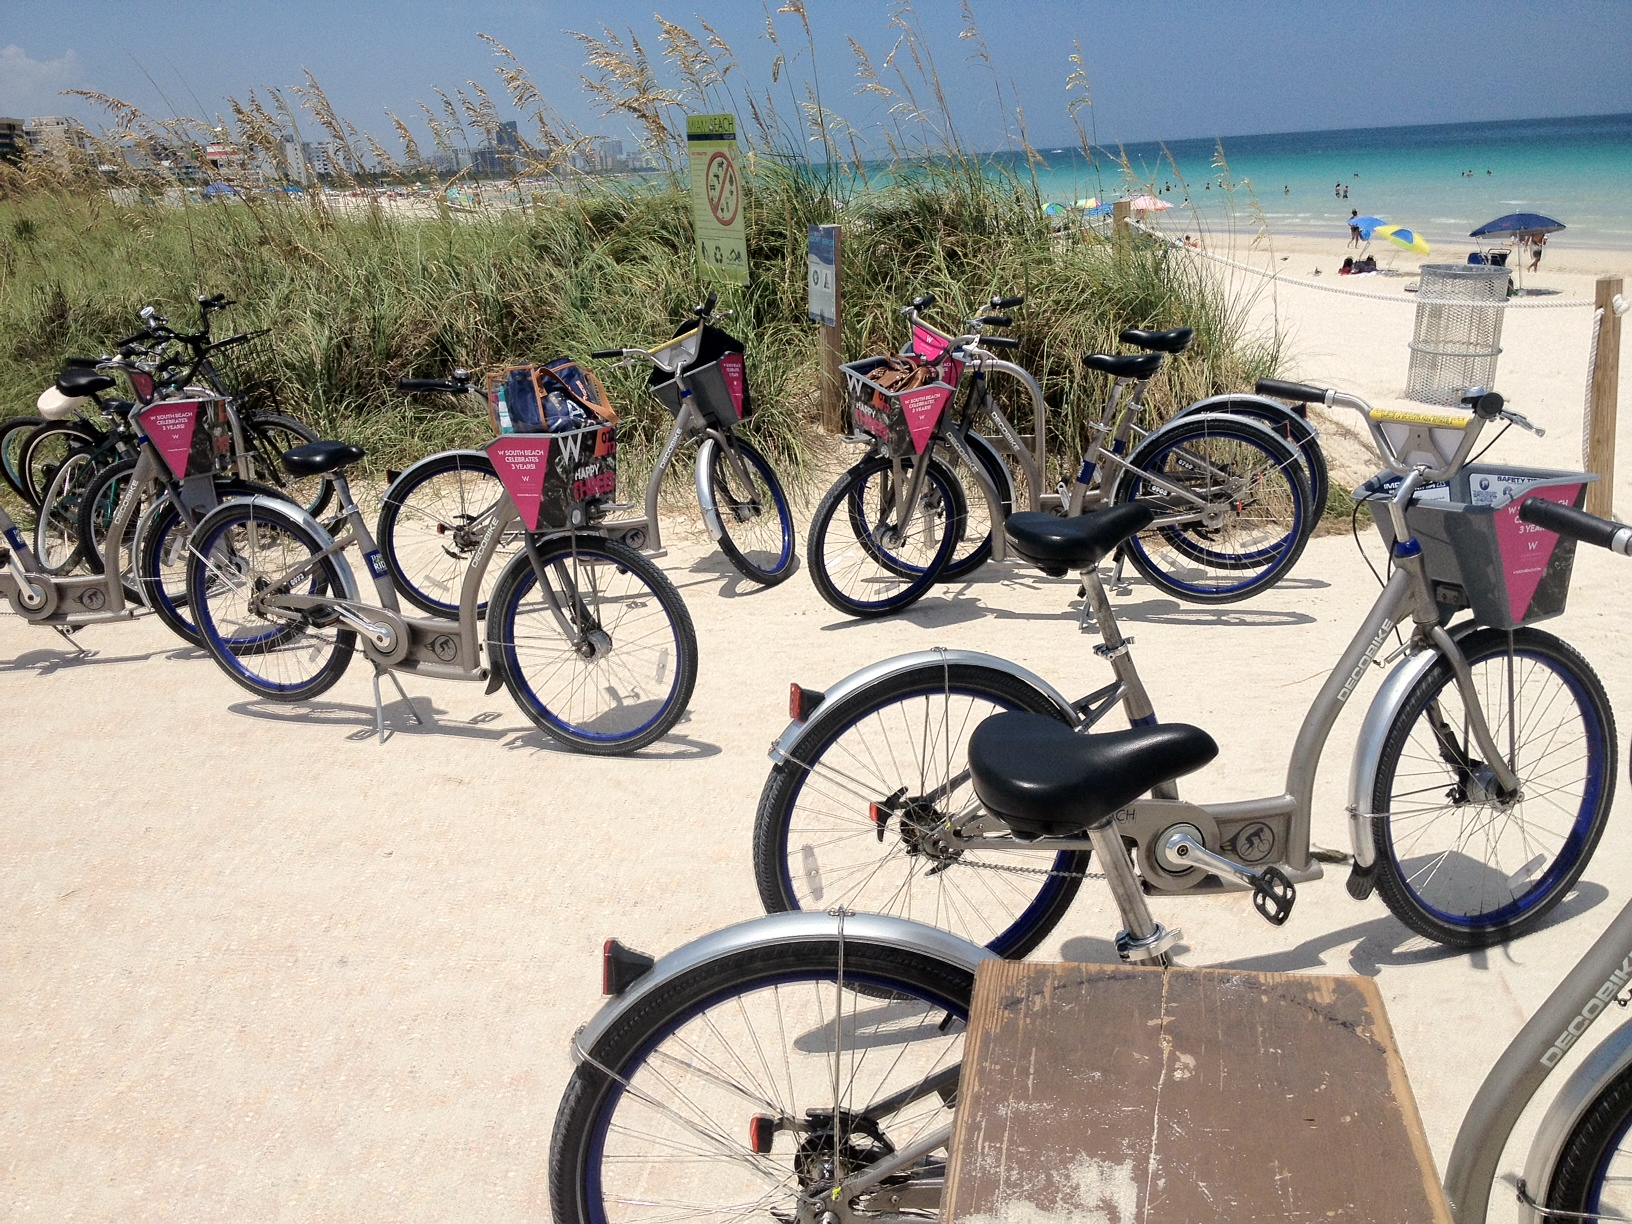 Bikes Miami Beach feet or your bikes to get